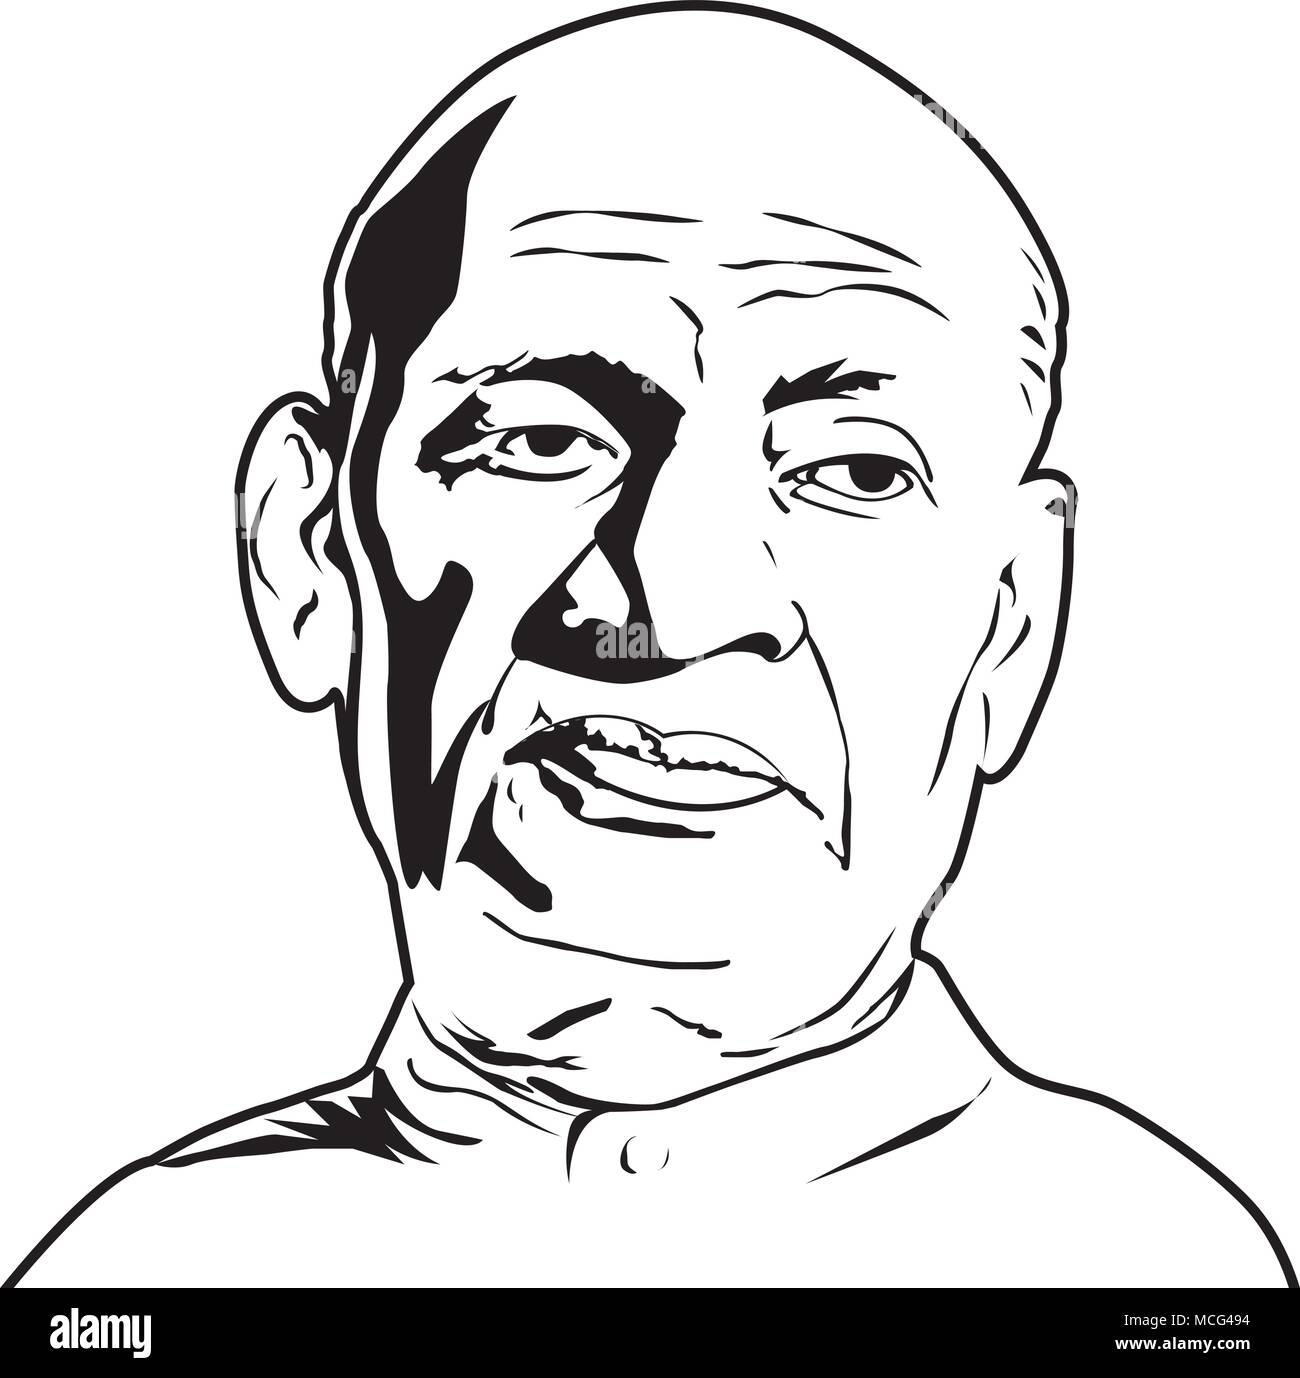 Sardar Patel,Vallabhbhai Patel ( 1875 – 1950), The first Deputy Prime Minister of India,Vallabhbhai Patel vector image. - Stock Image